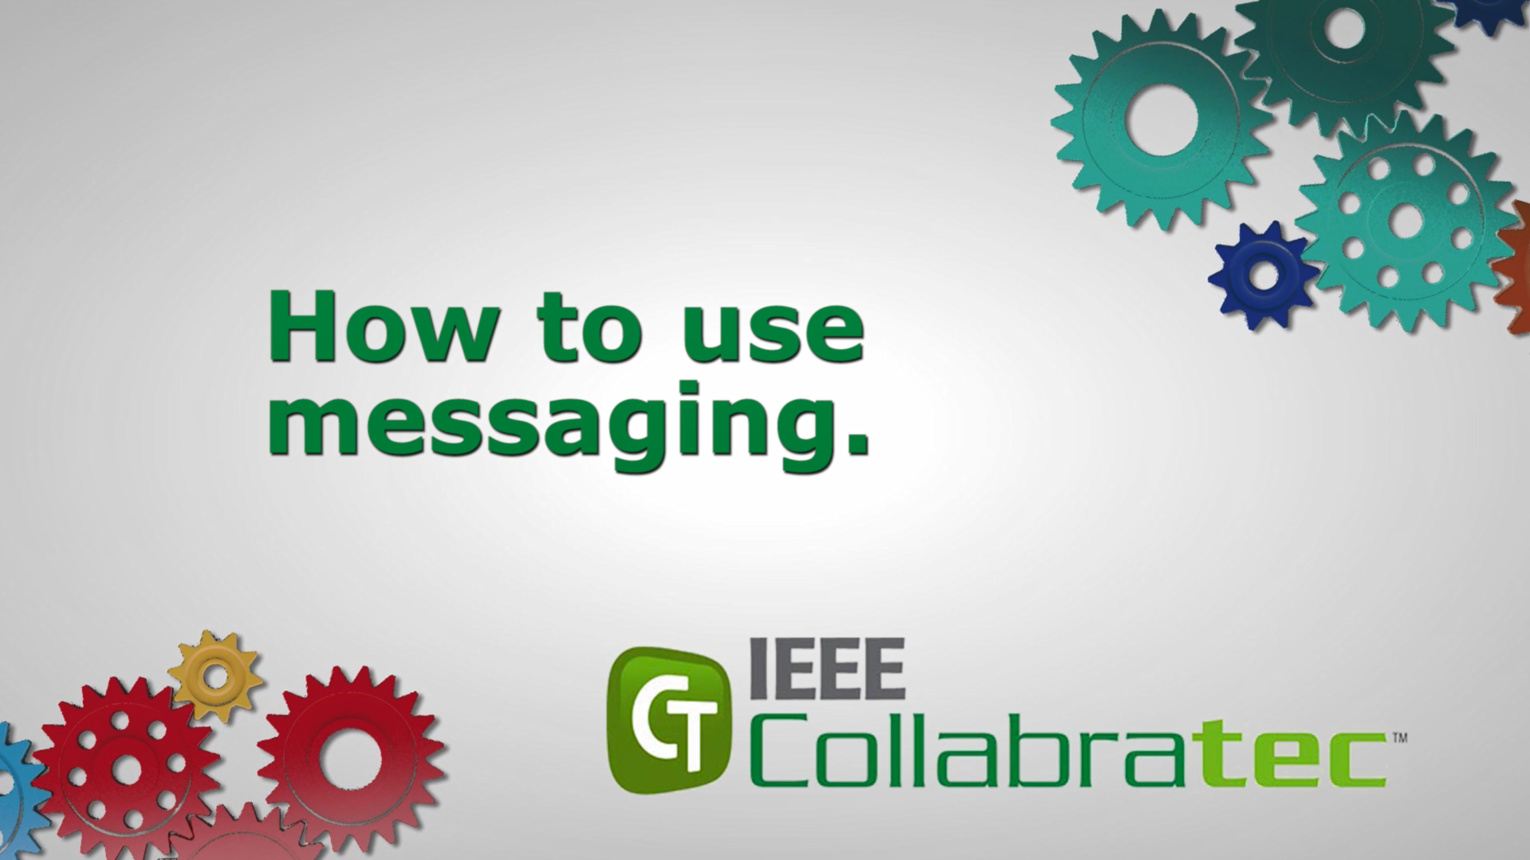 IEEE Collabratec: Messaging